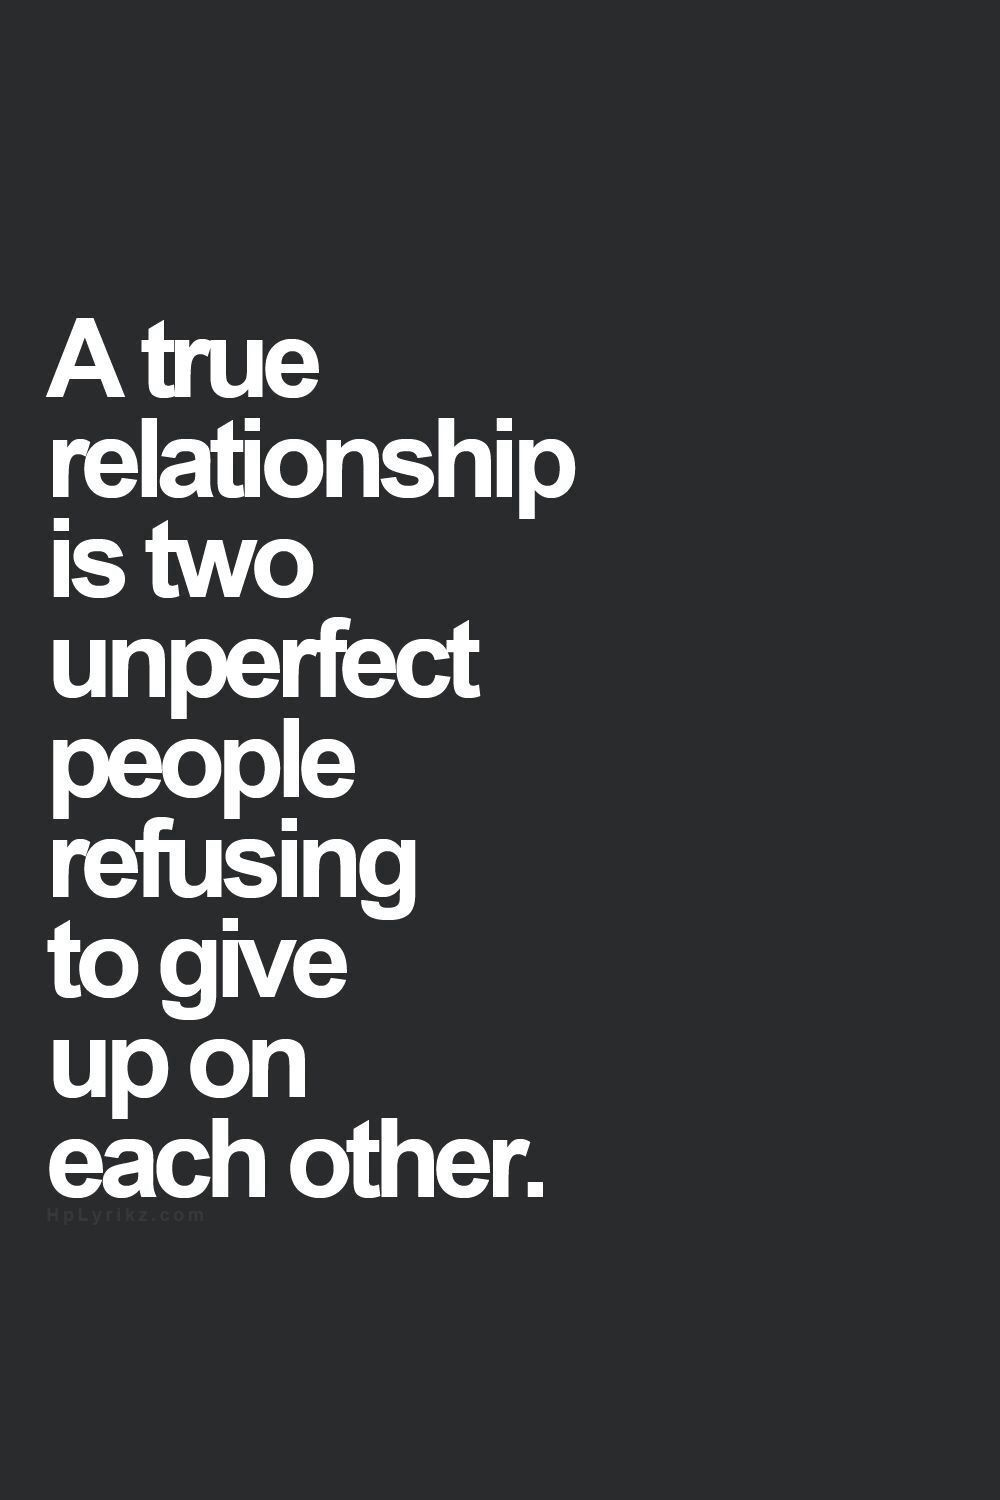 Inspirational Love Quotes 26 Inspirational Love Quotes And Sayings For Her  Relationship